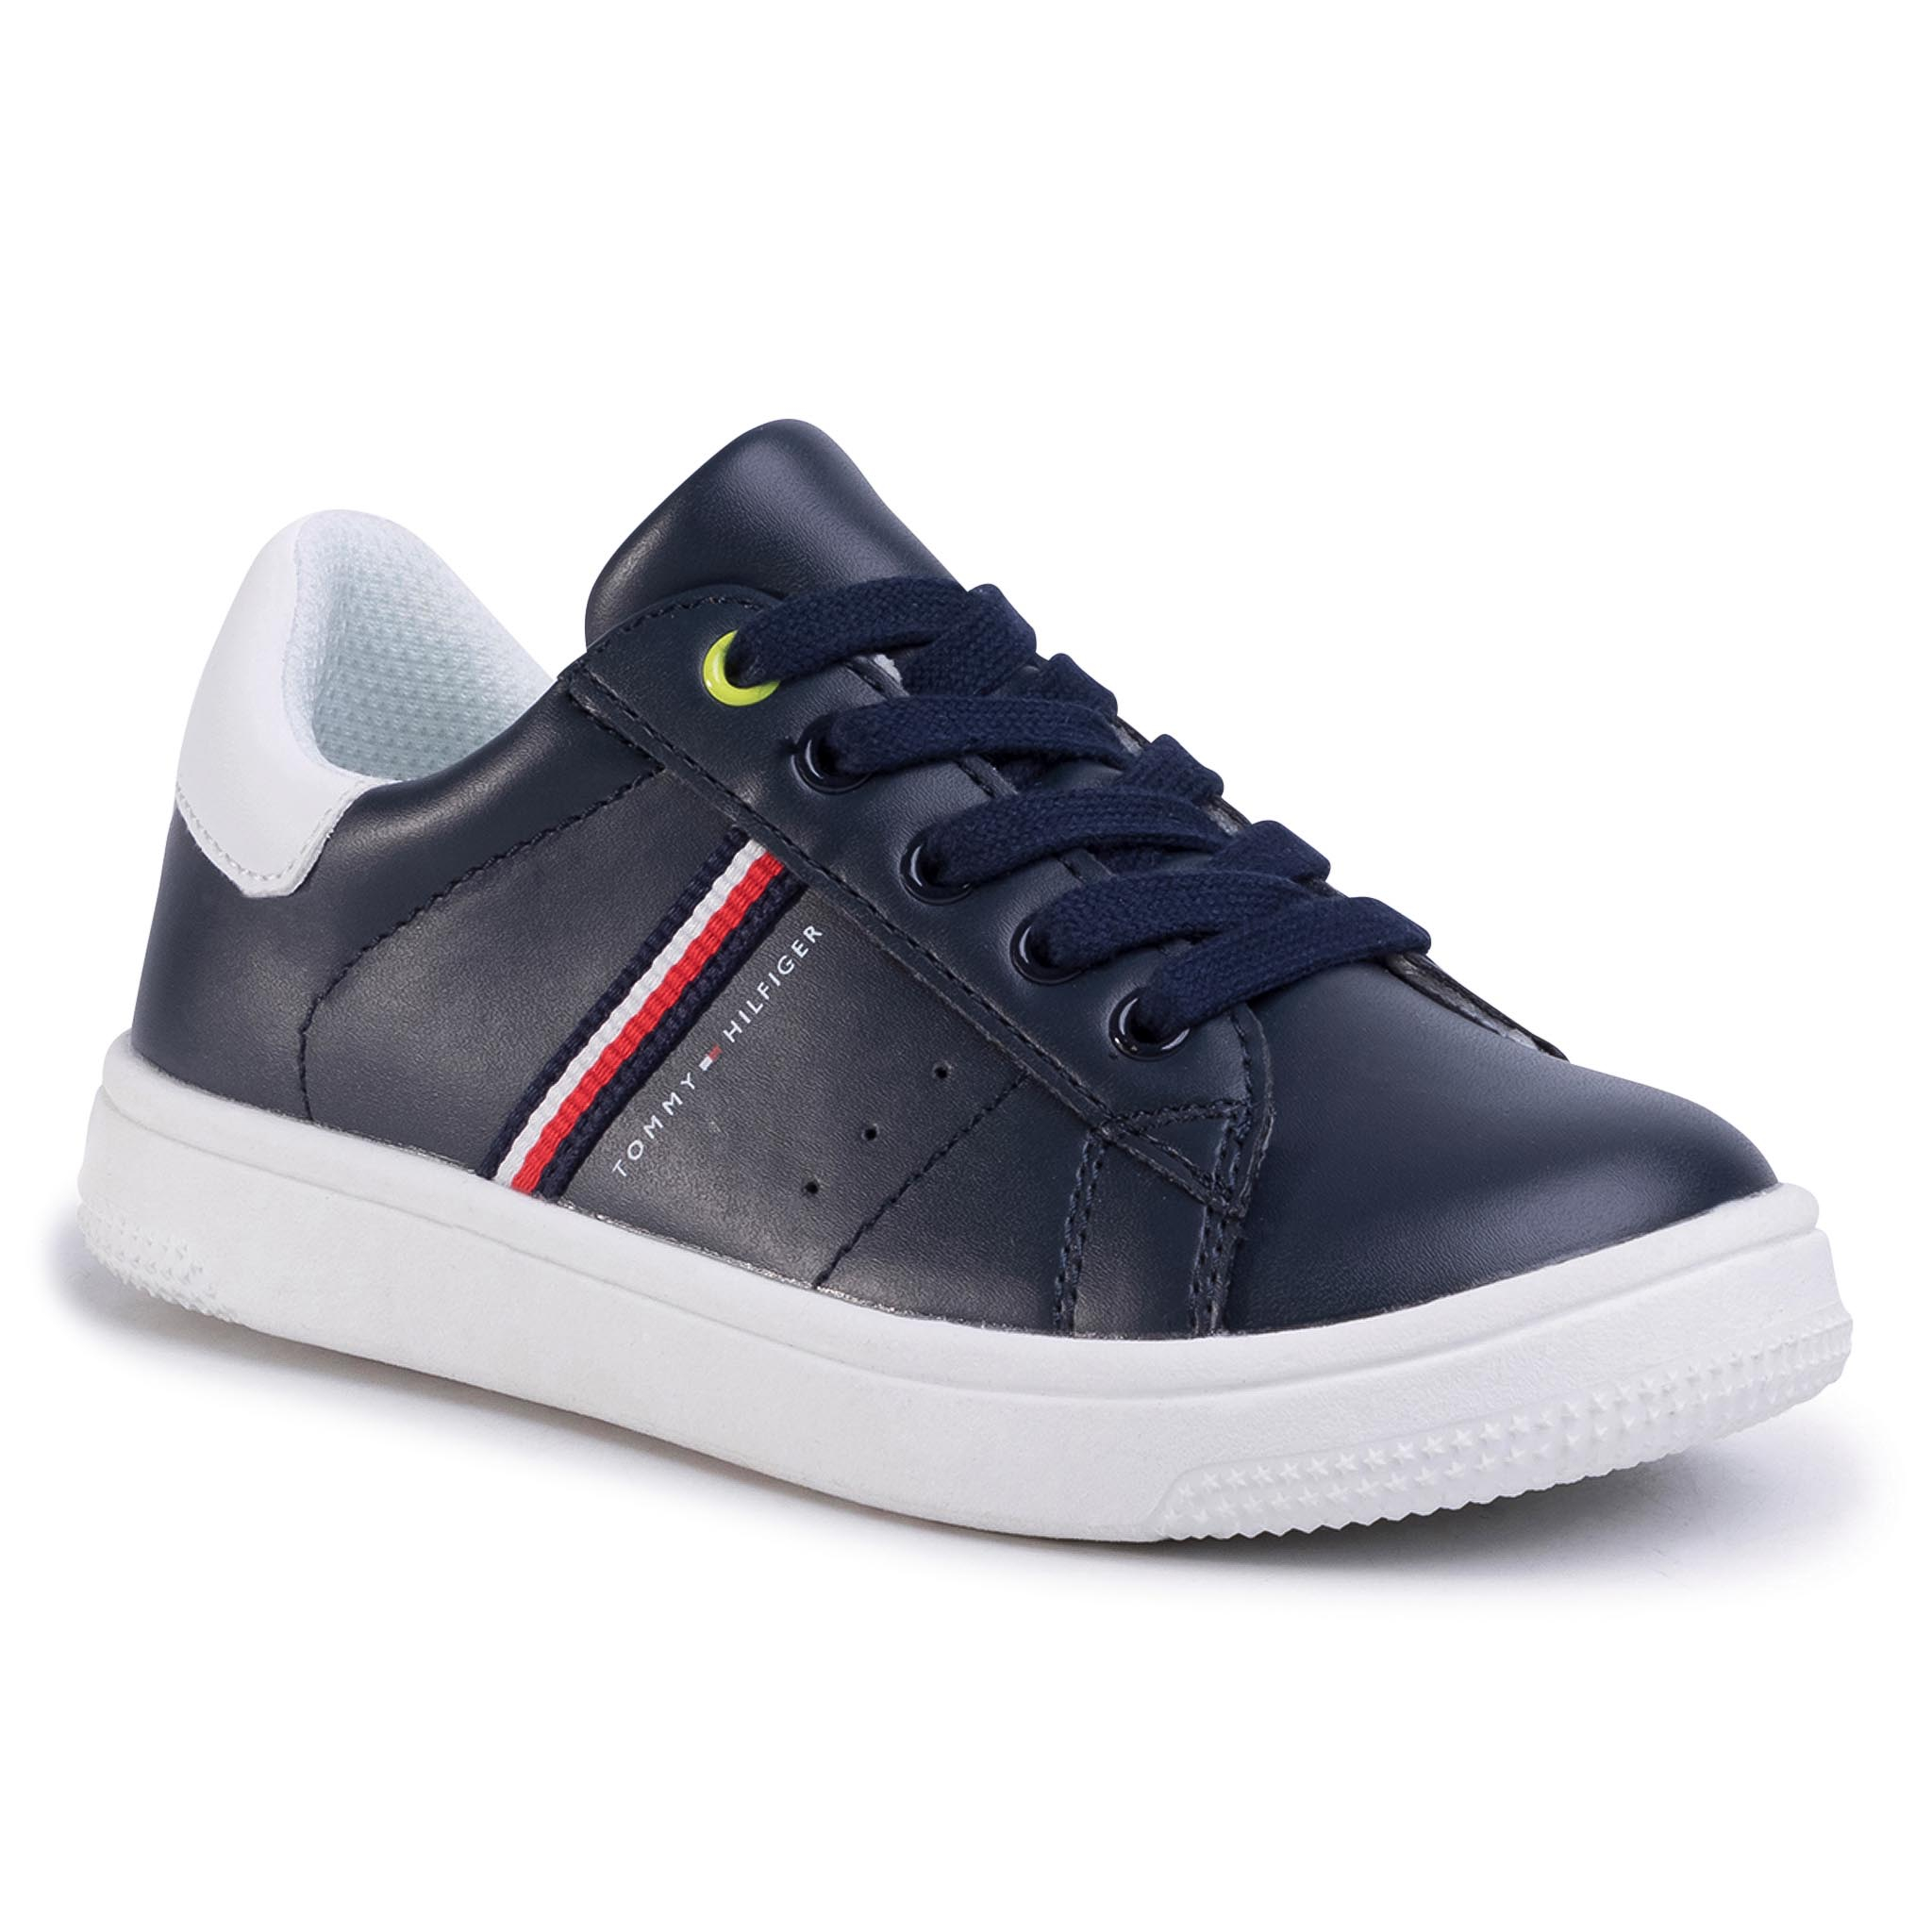 Sneakers TOMMY HILFIGER - Low Cut Lace-Up Sneaker T3B4-30709-0621 M Blue/White X007